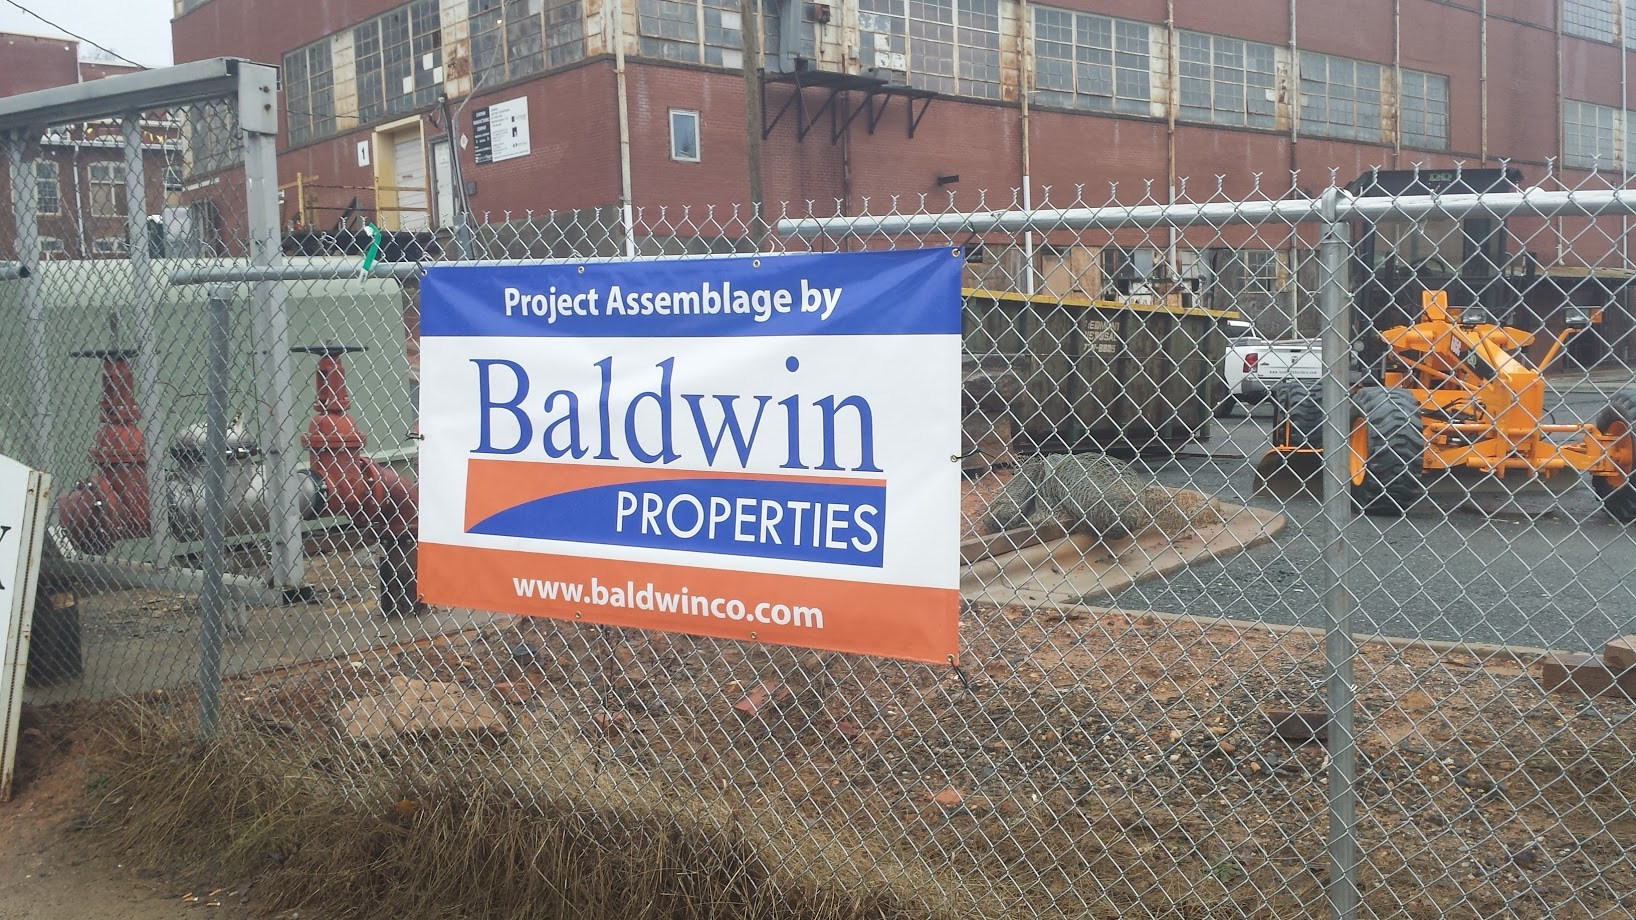 project-assemblage-baldwinco-properties-signage